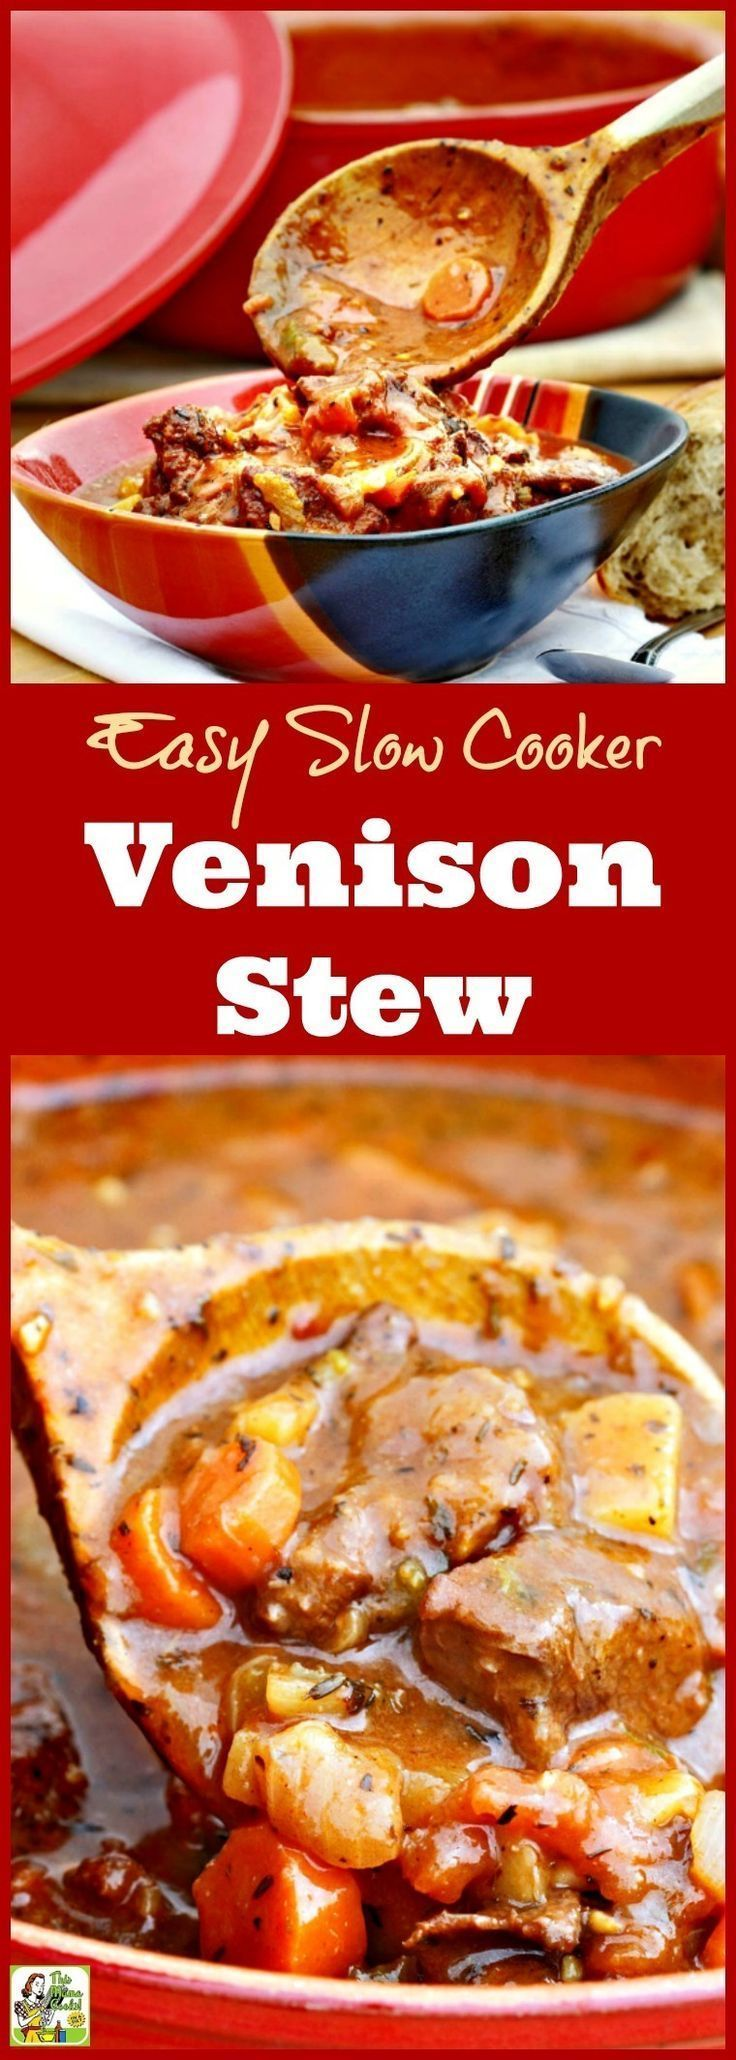 Easy Slow Cooker Venison Stew